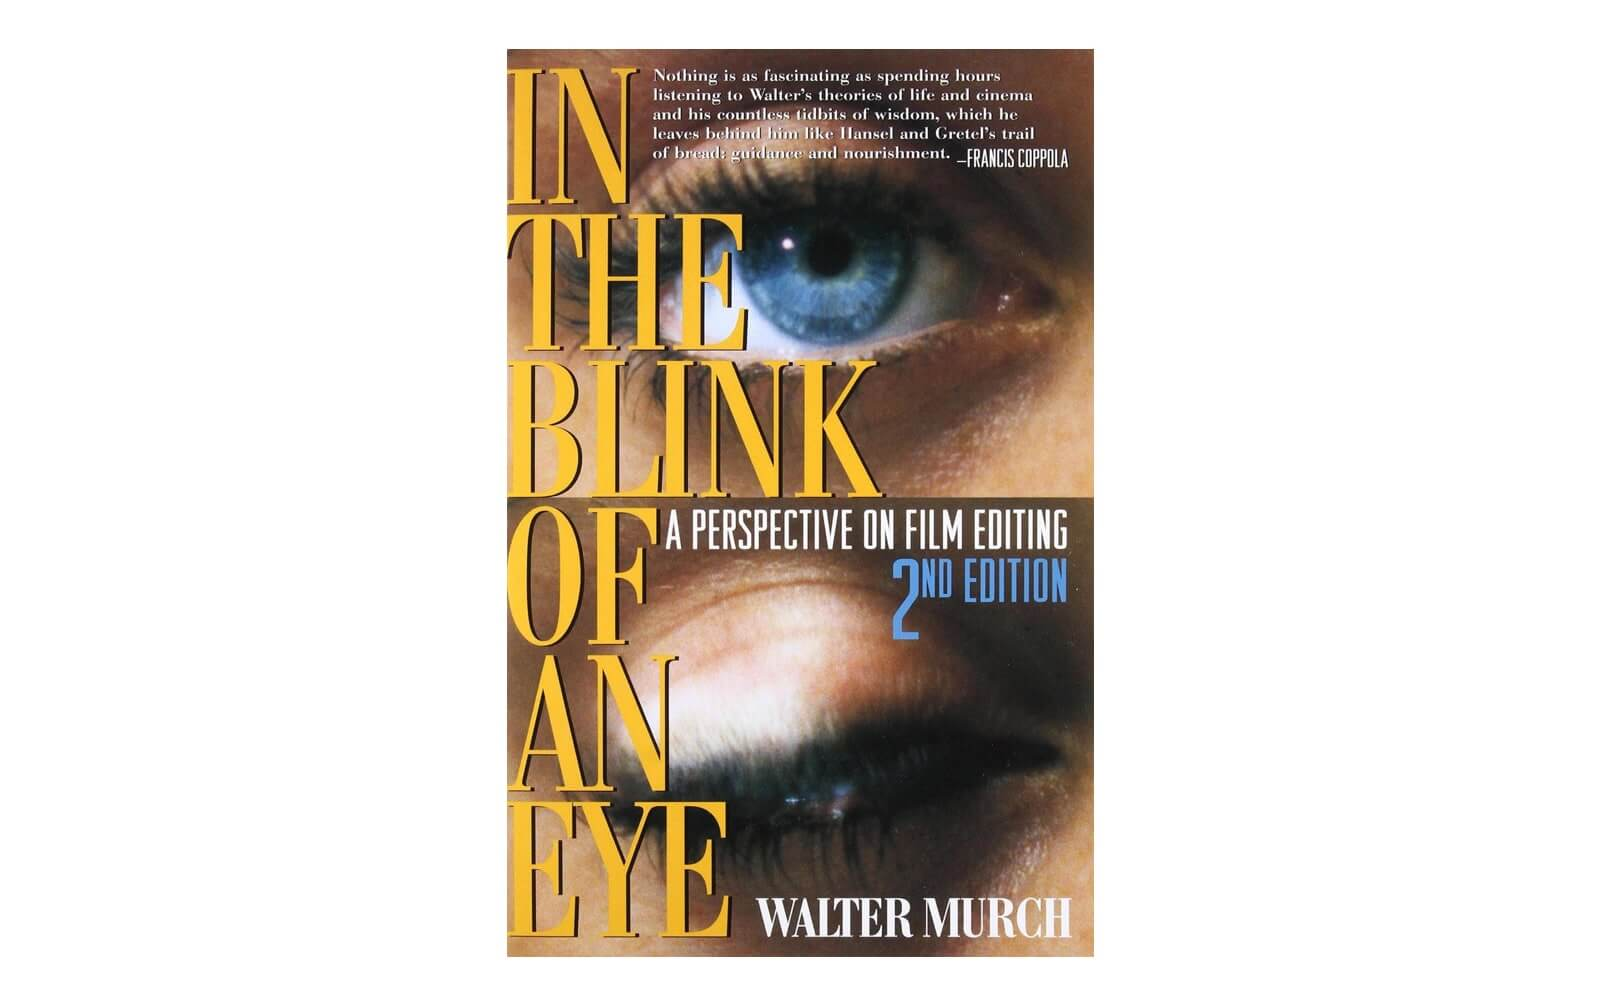 Best Filmmaking Books - In The Blink Of An Eye - Walter Murch - Best Books On Film Editing - StudioBinder